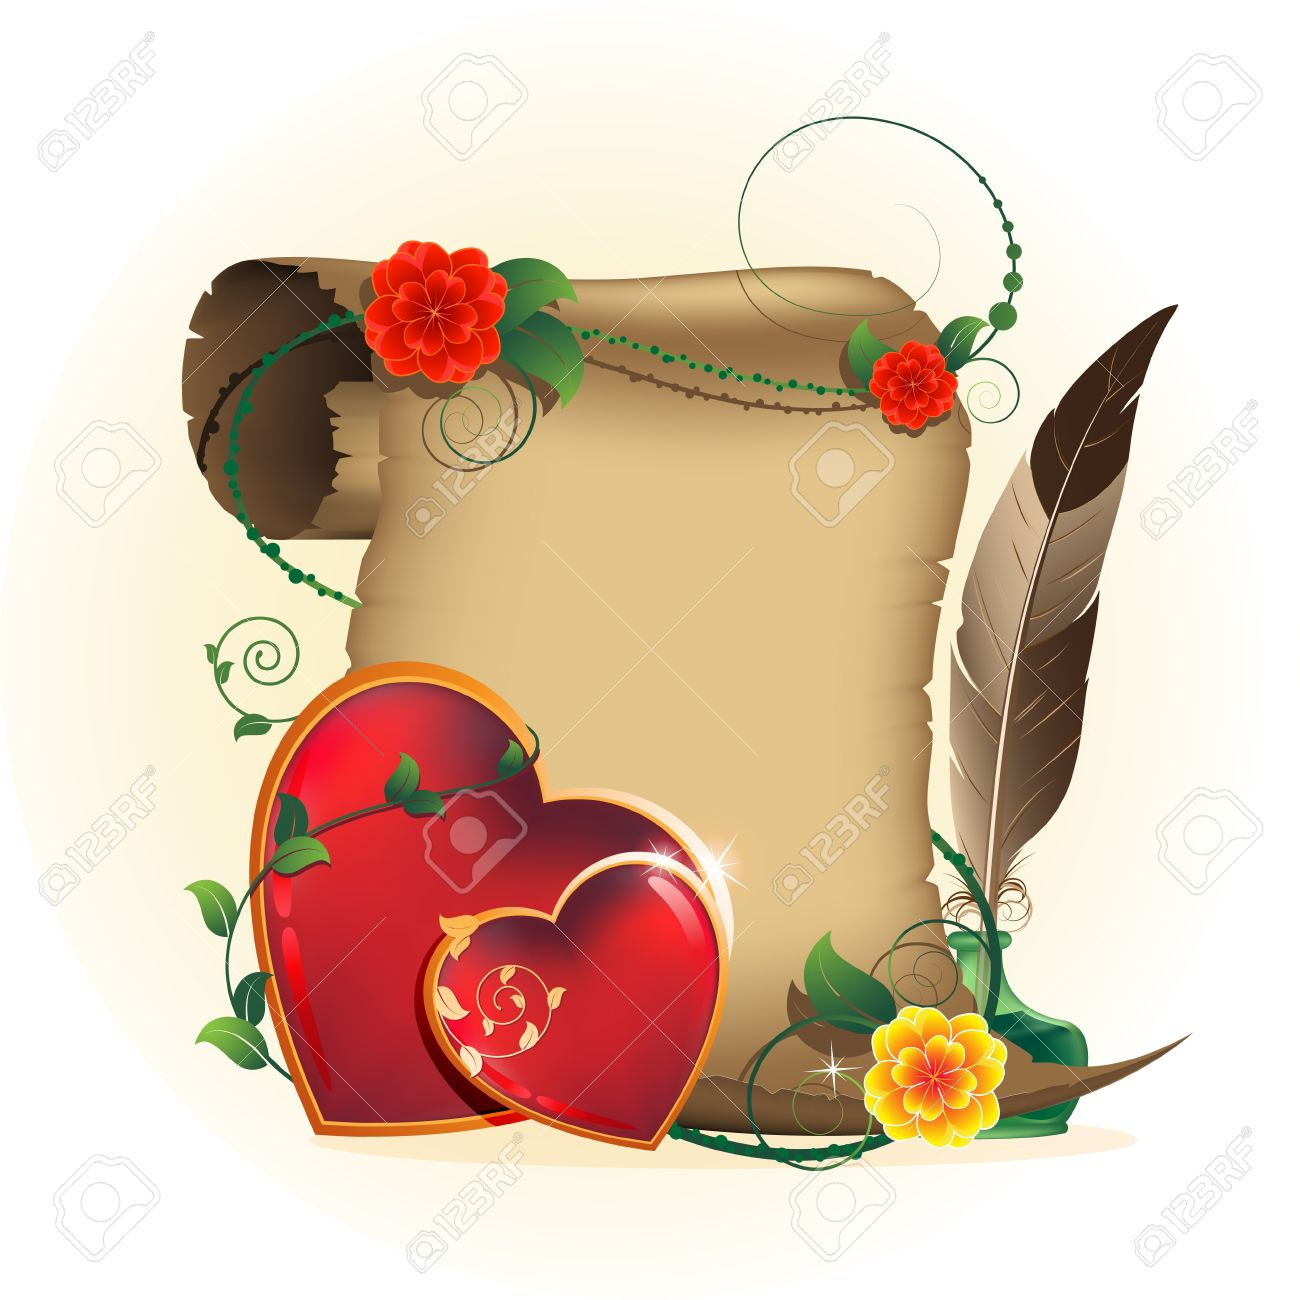 Two shining hearts with a floral pattern, parchment, inkwell and feather Valentines Day romantic card - 17466207